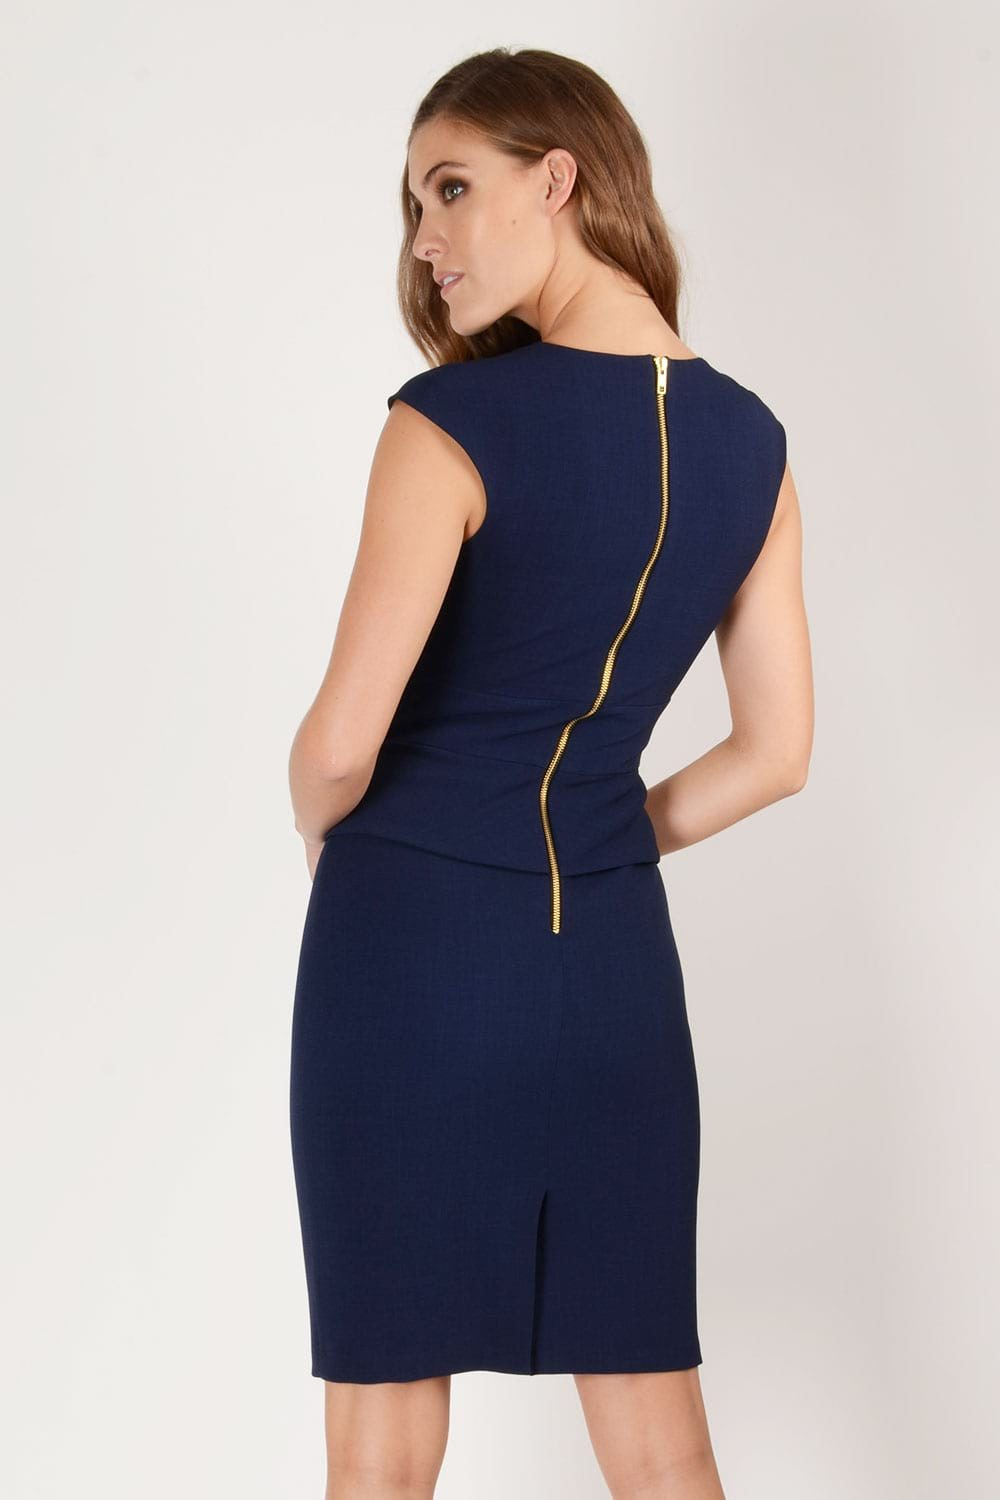 Hybrid Fashion 1240 Elsa Tie Detail Pencil Dress